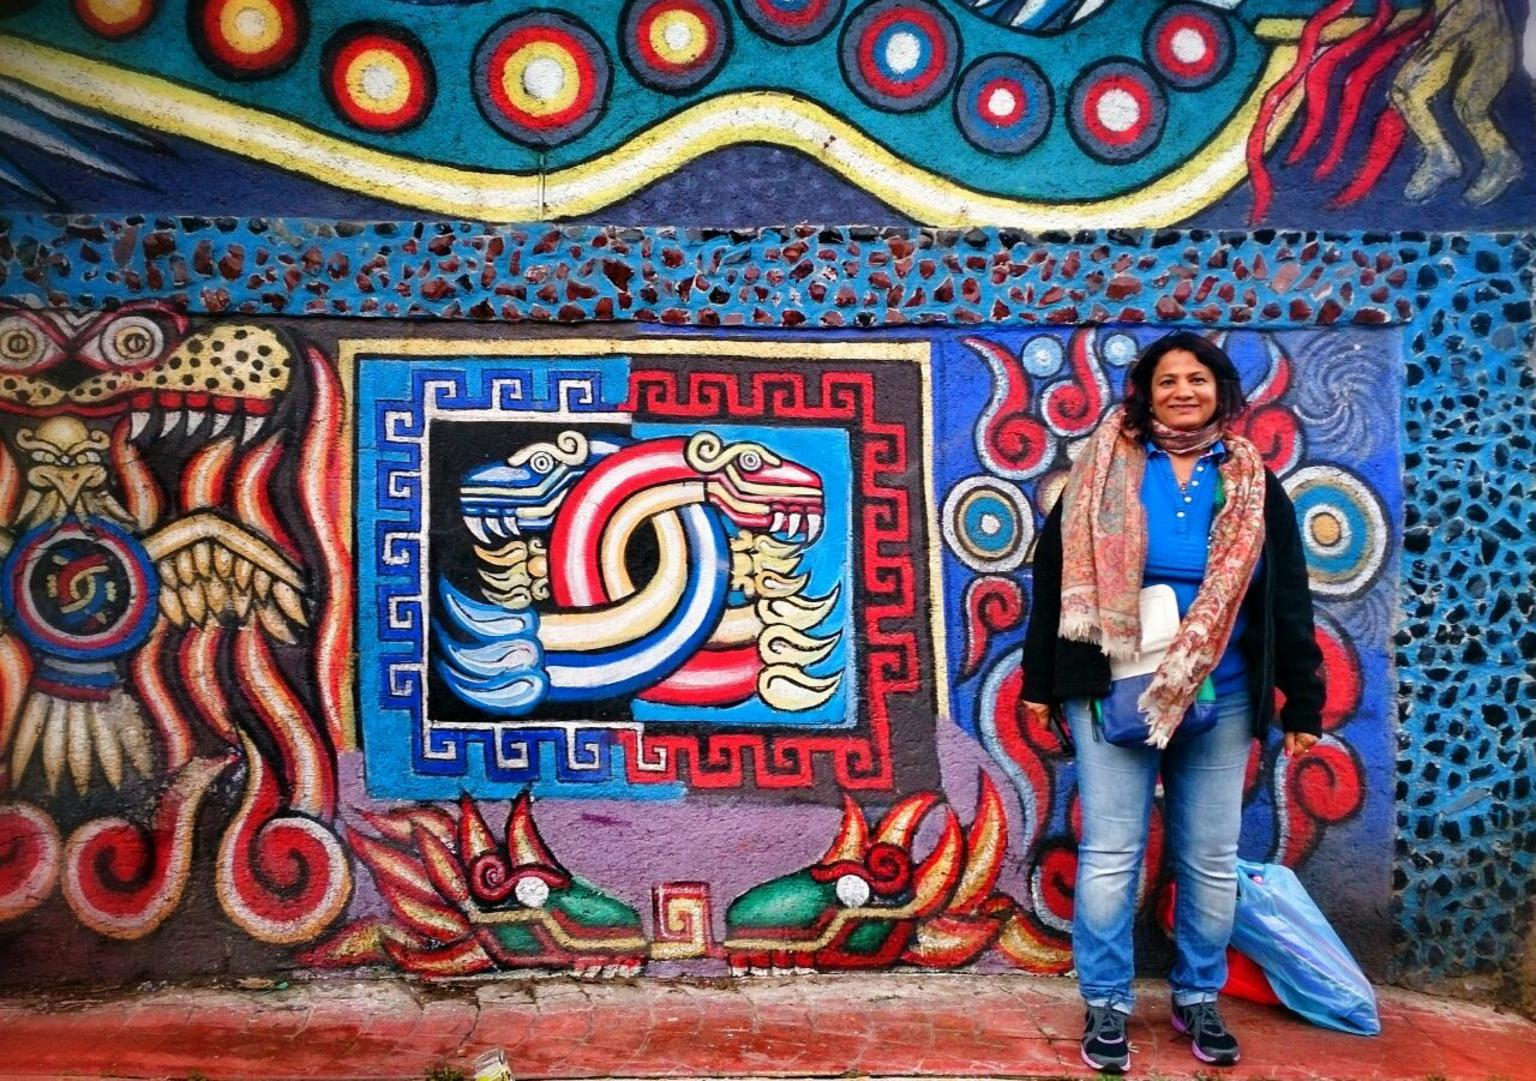 Experience Mexico City: Teotihuacan Day-Trip & Dinner with the Locals